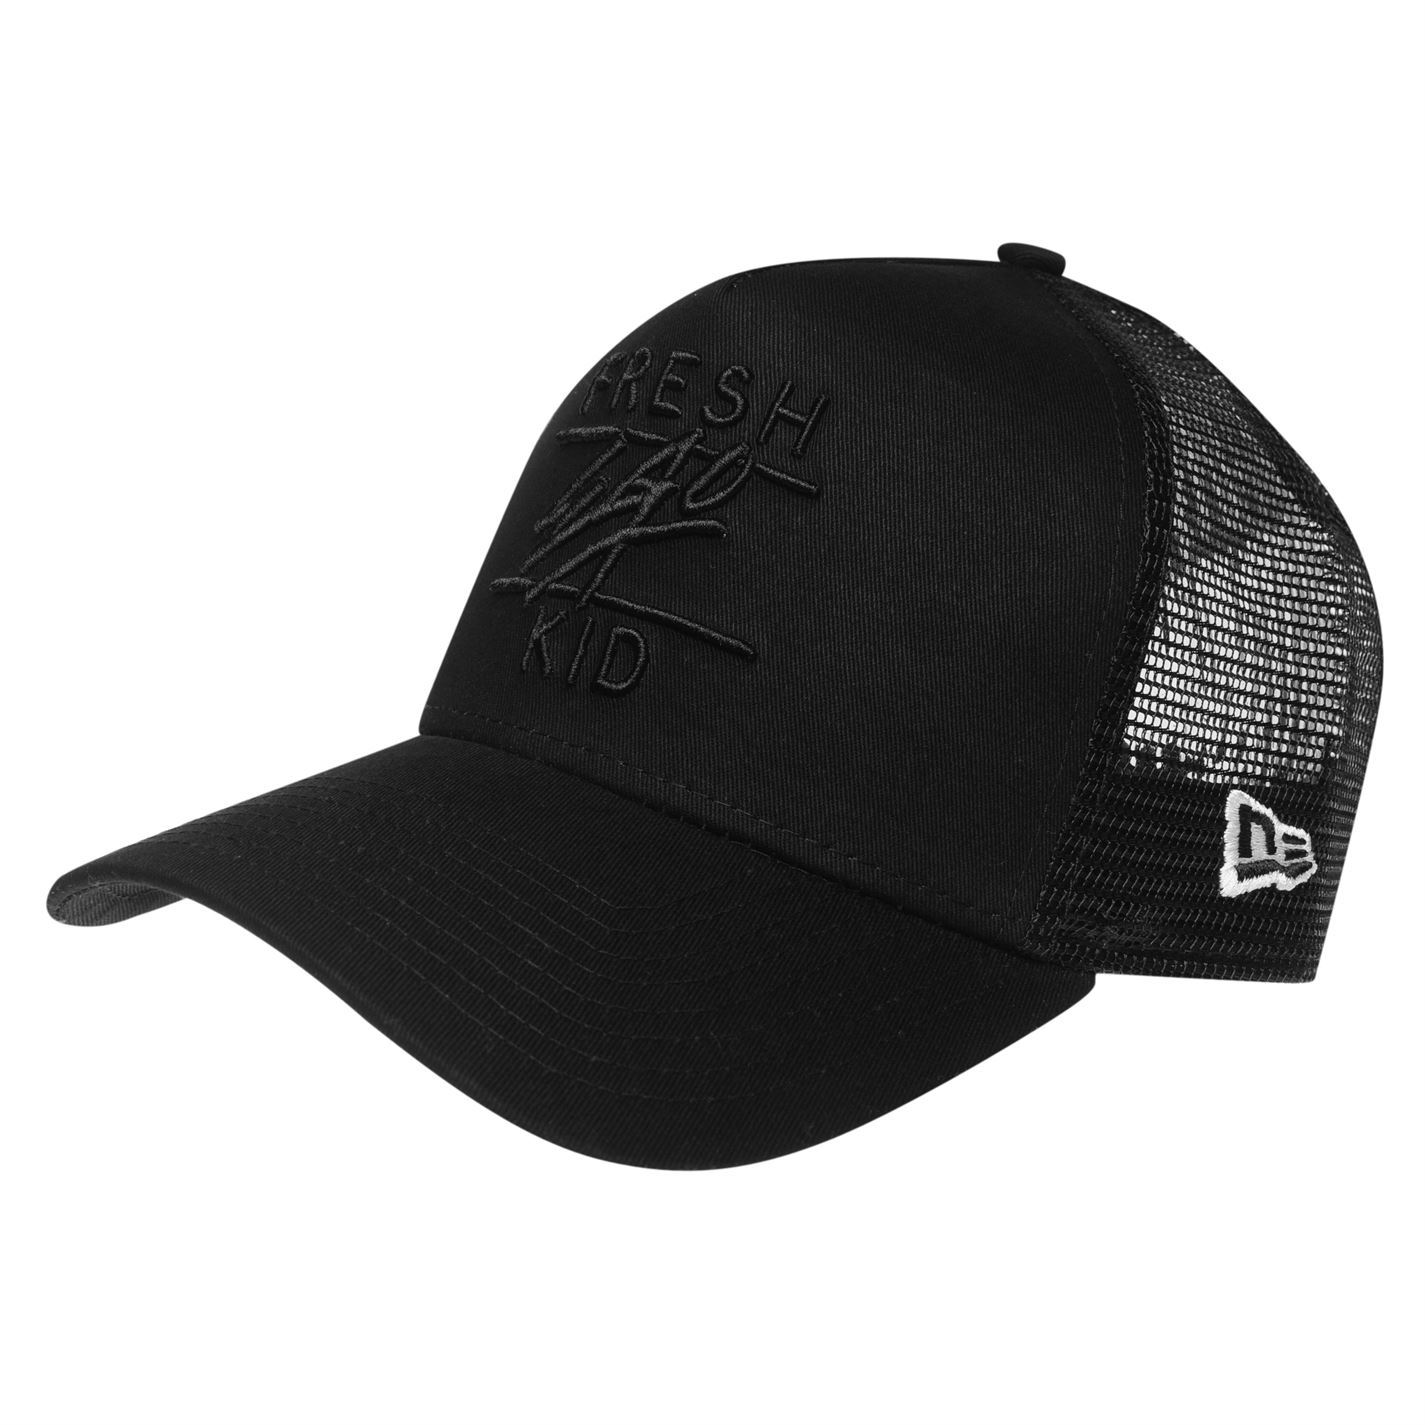 173da56c55b Details about Mens Fresh Ego Kid Trucker Cap Mesh New